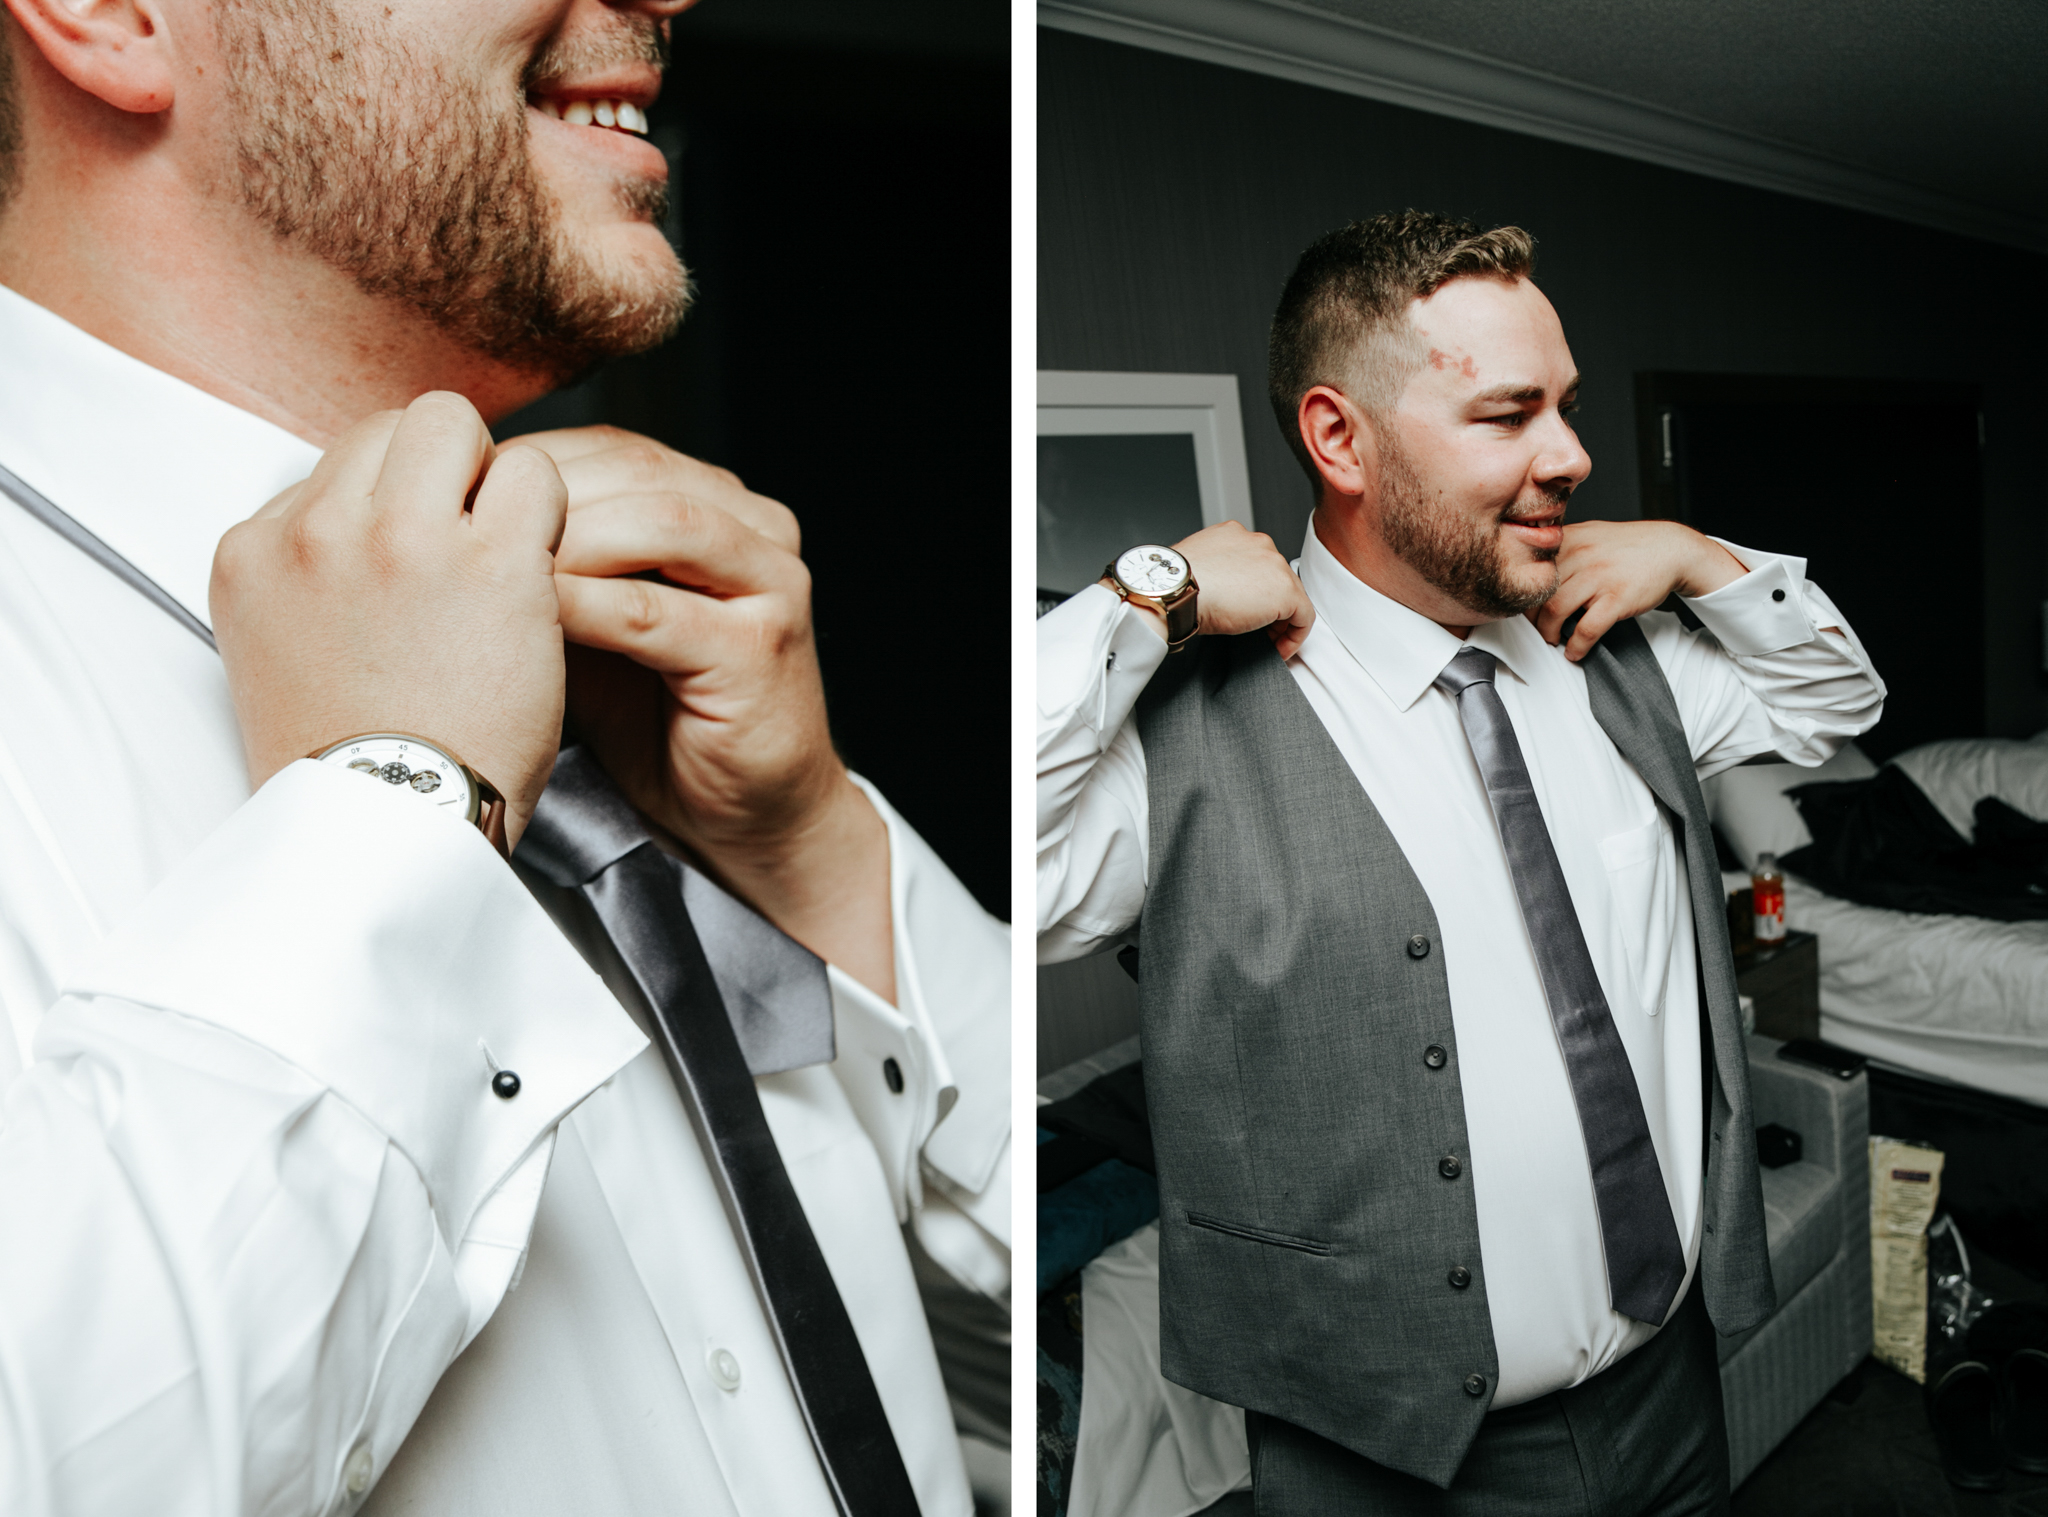 lethbridge-wedding-photographer-love-and-be-loved-photography-trent-danielle-galt-reception-picture-image-photo-79.jpg